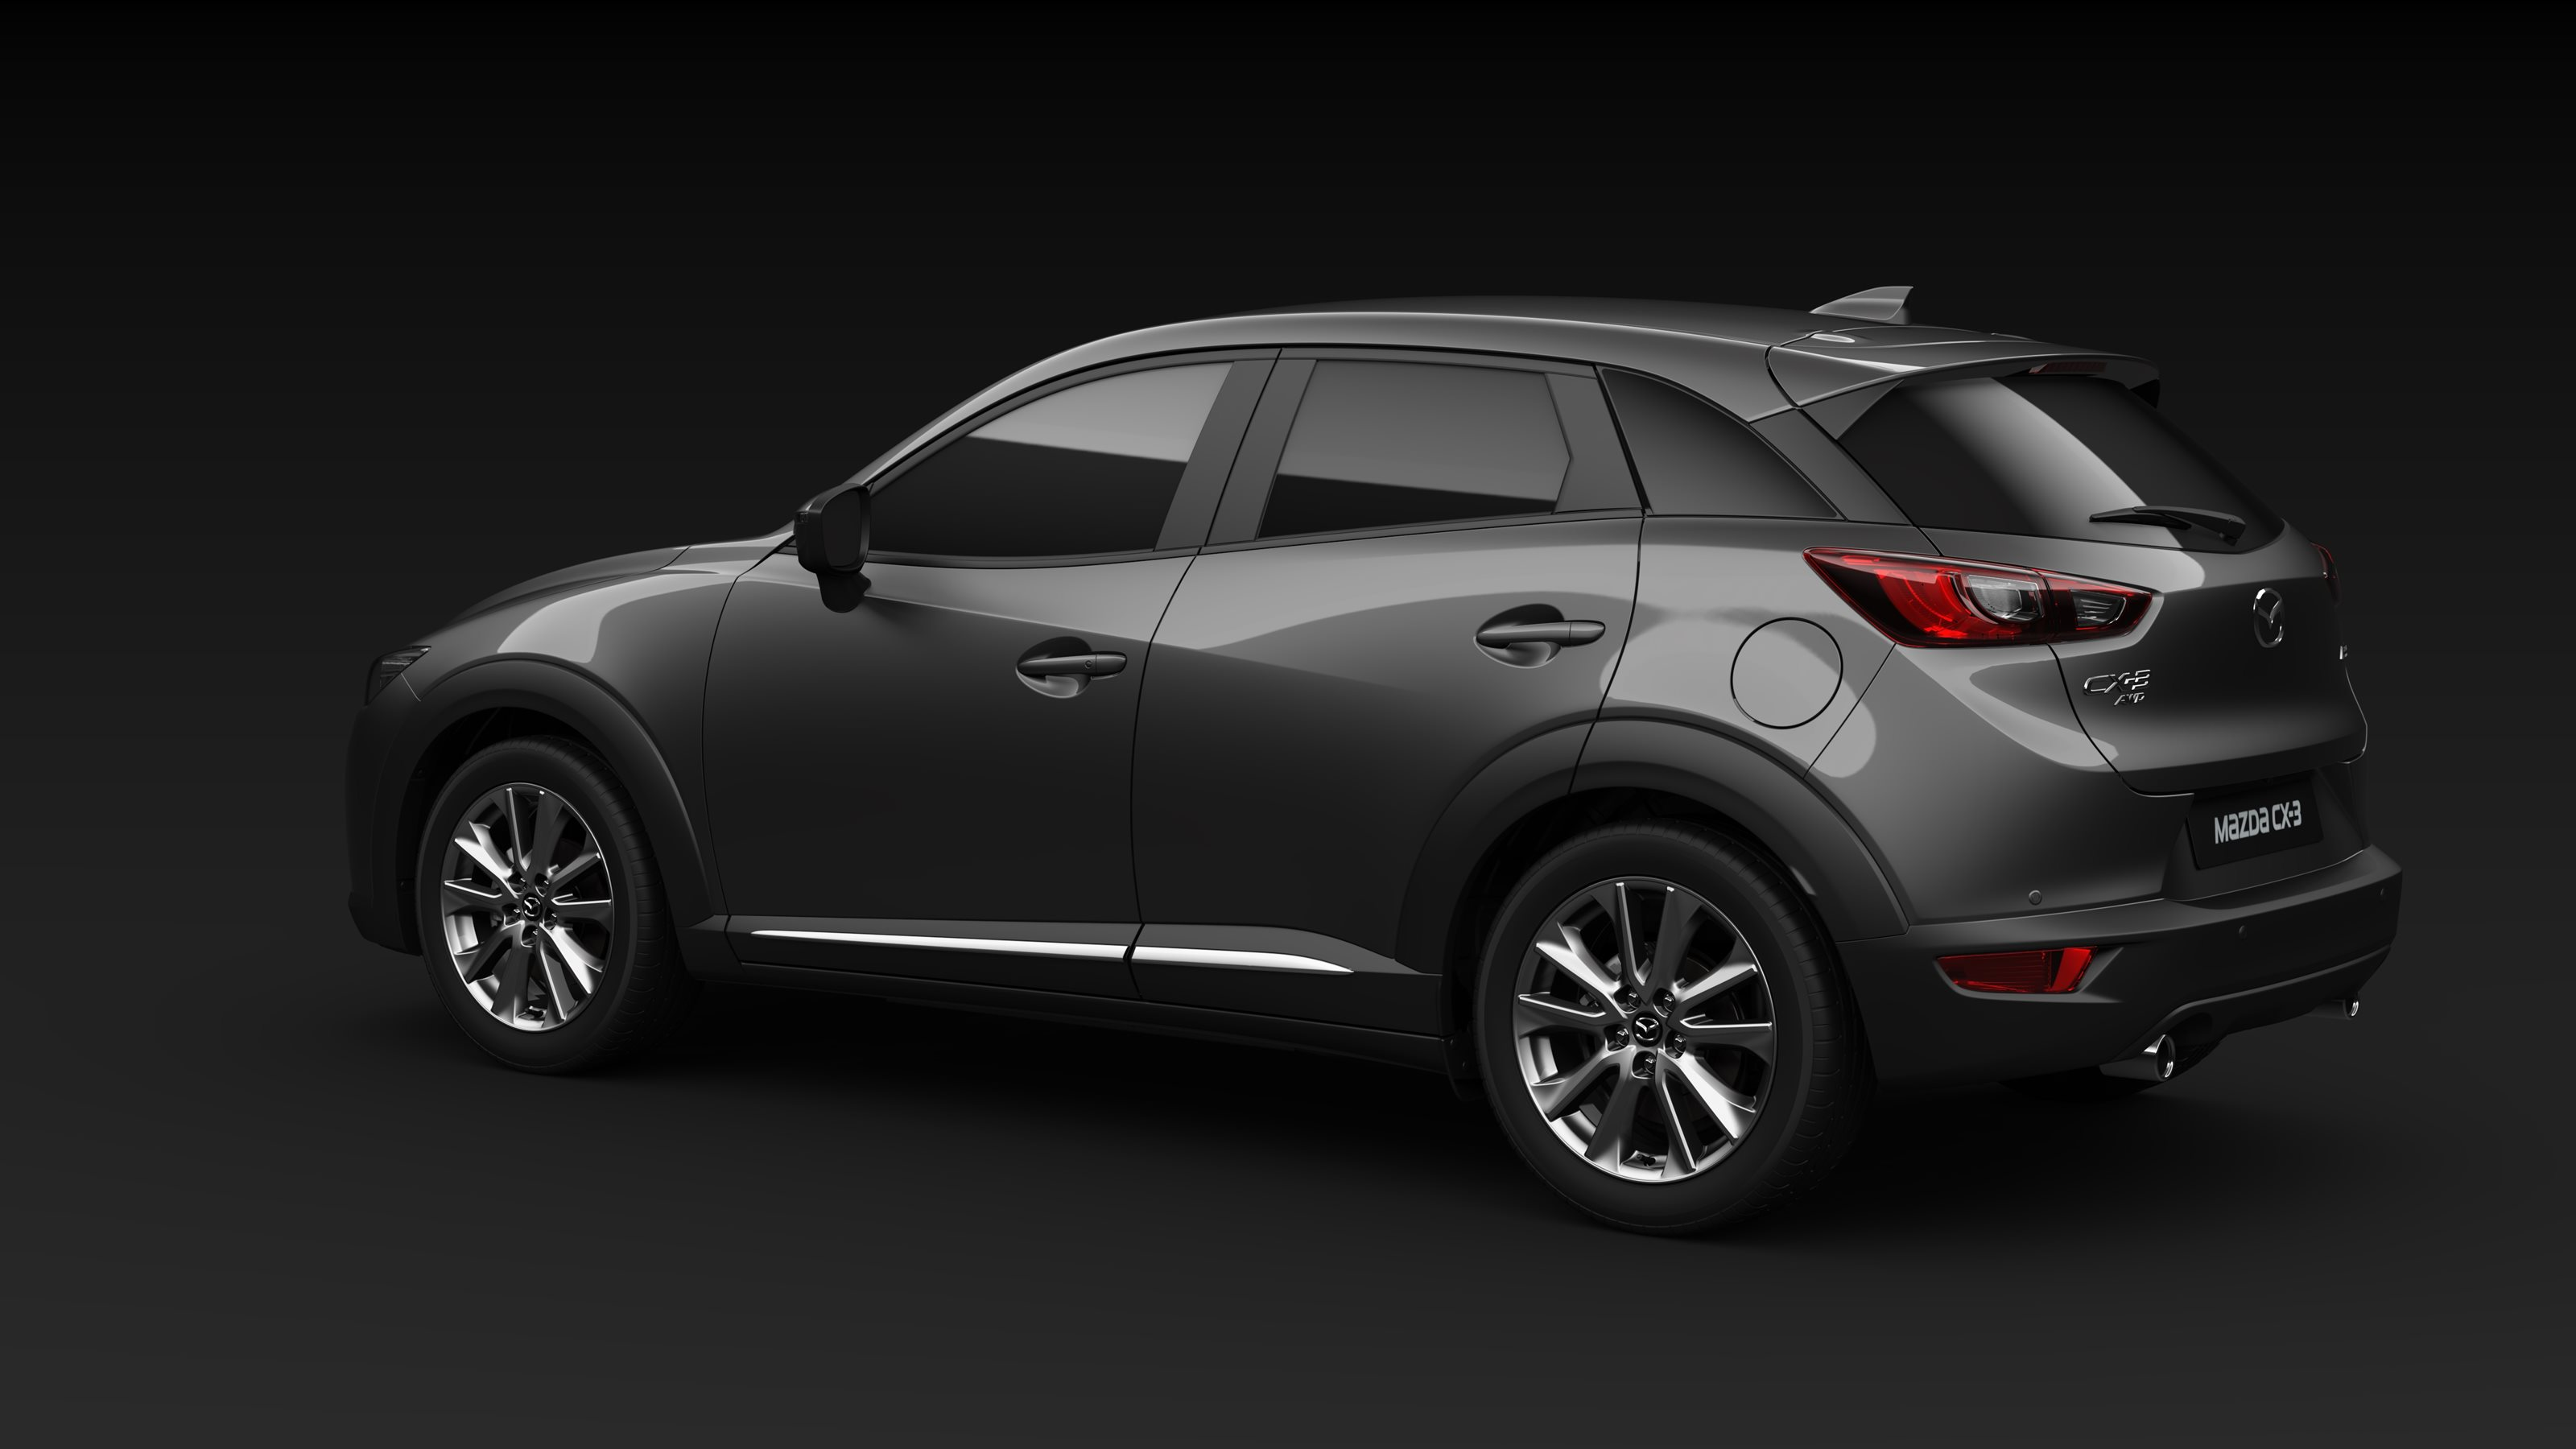 mazda cx-3 luxury edition: caratteristiche e prezzi - autotoday.it